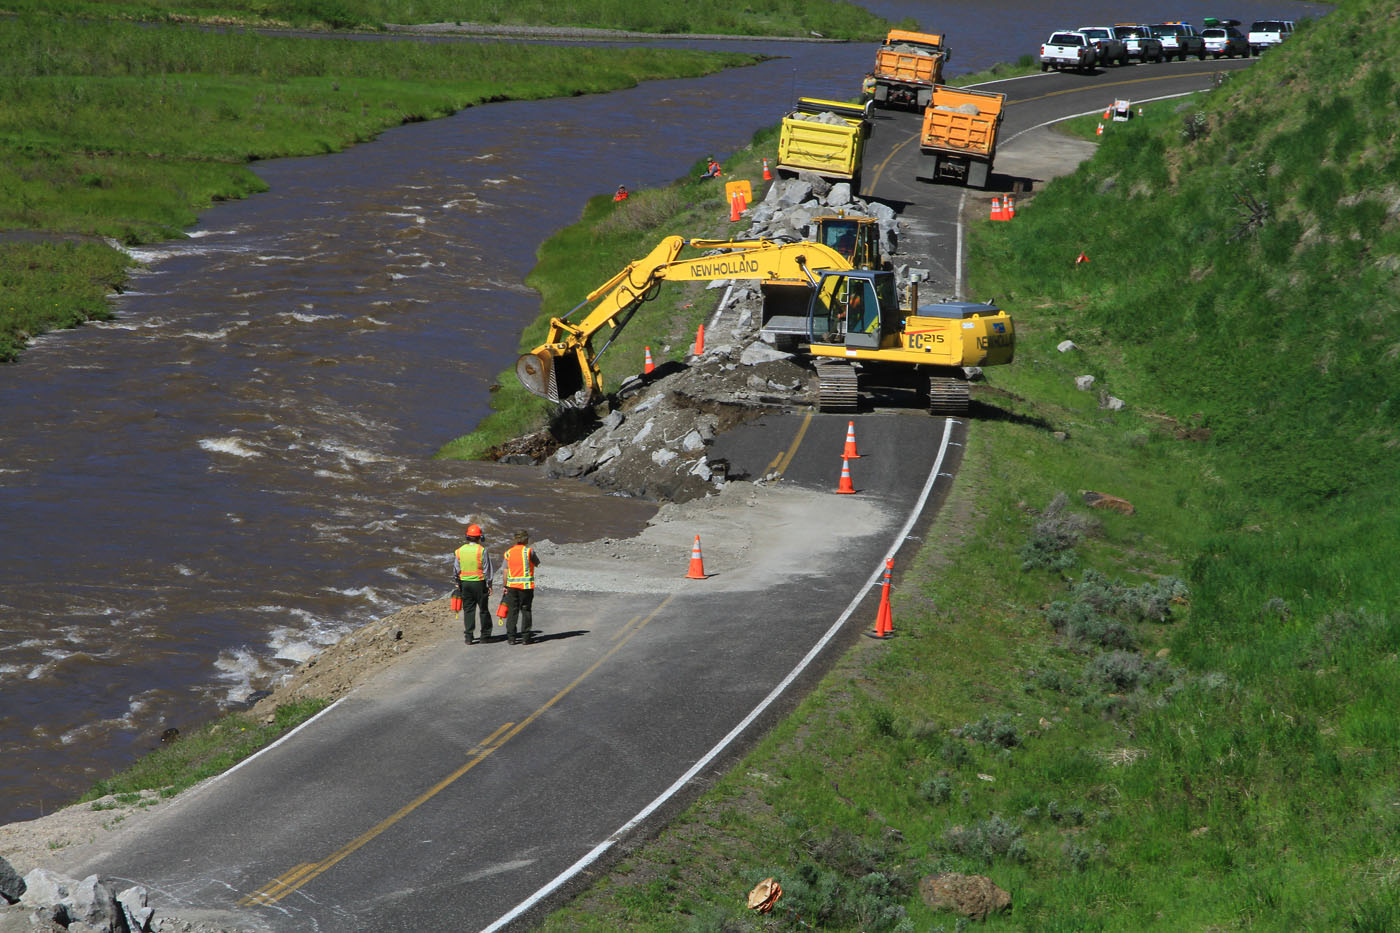 Equipment working on Lamar Valley road washout